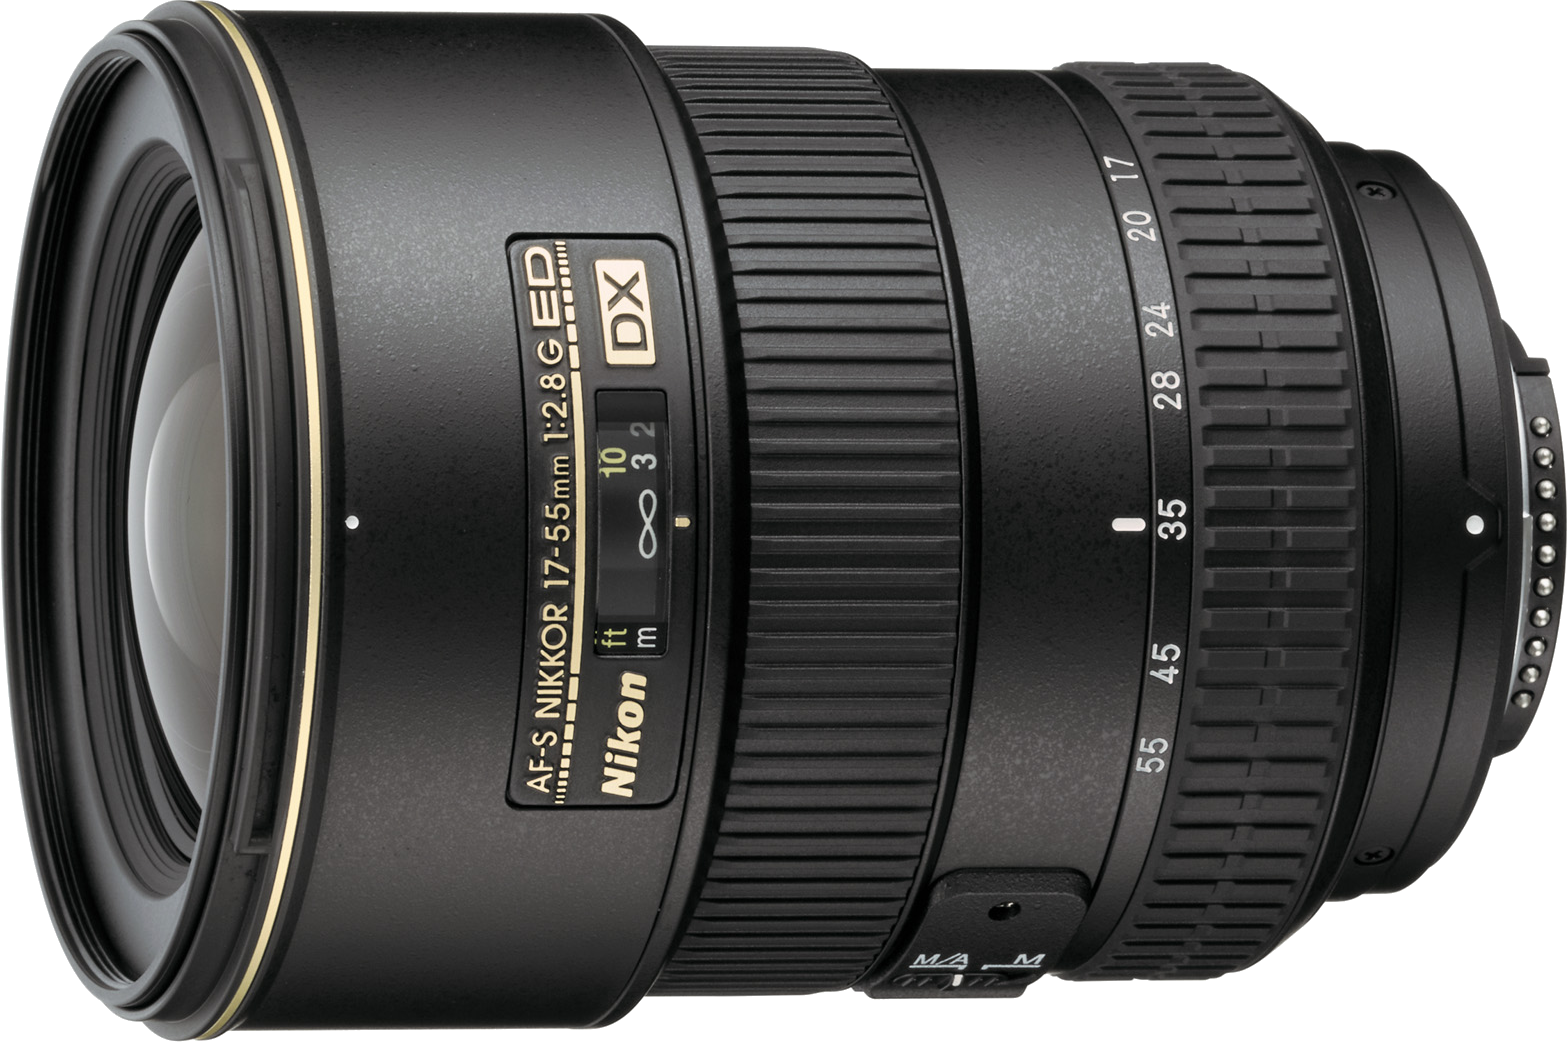 A wide to standard zoom lens with constant f/2.8 aperture, this lens is popular for low light photography with crop sensors.